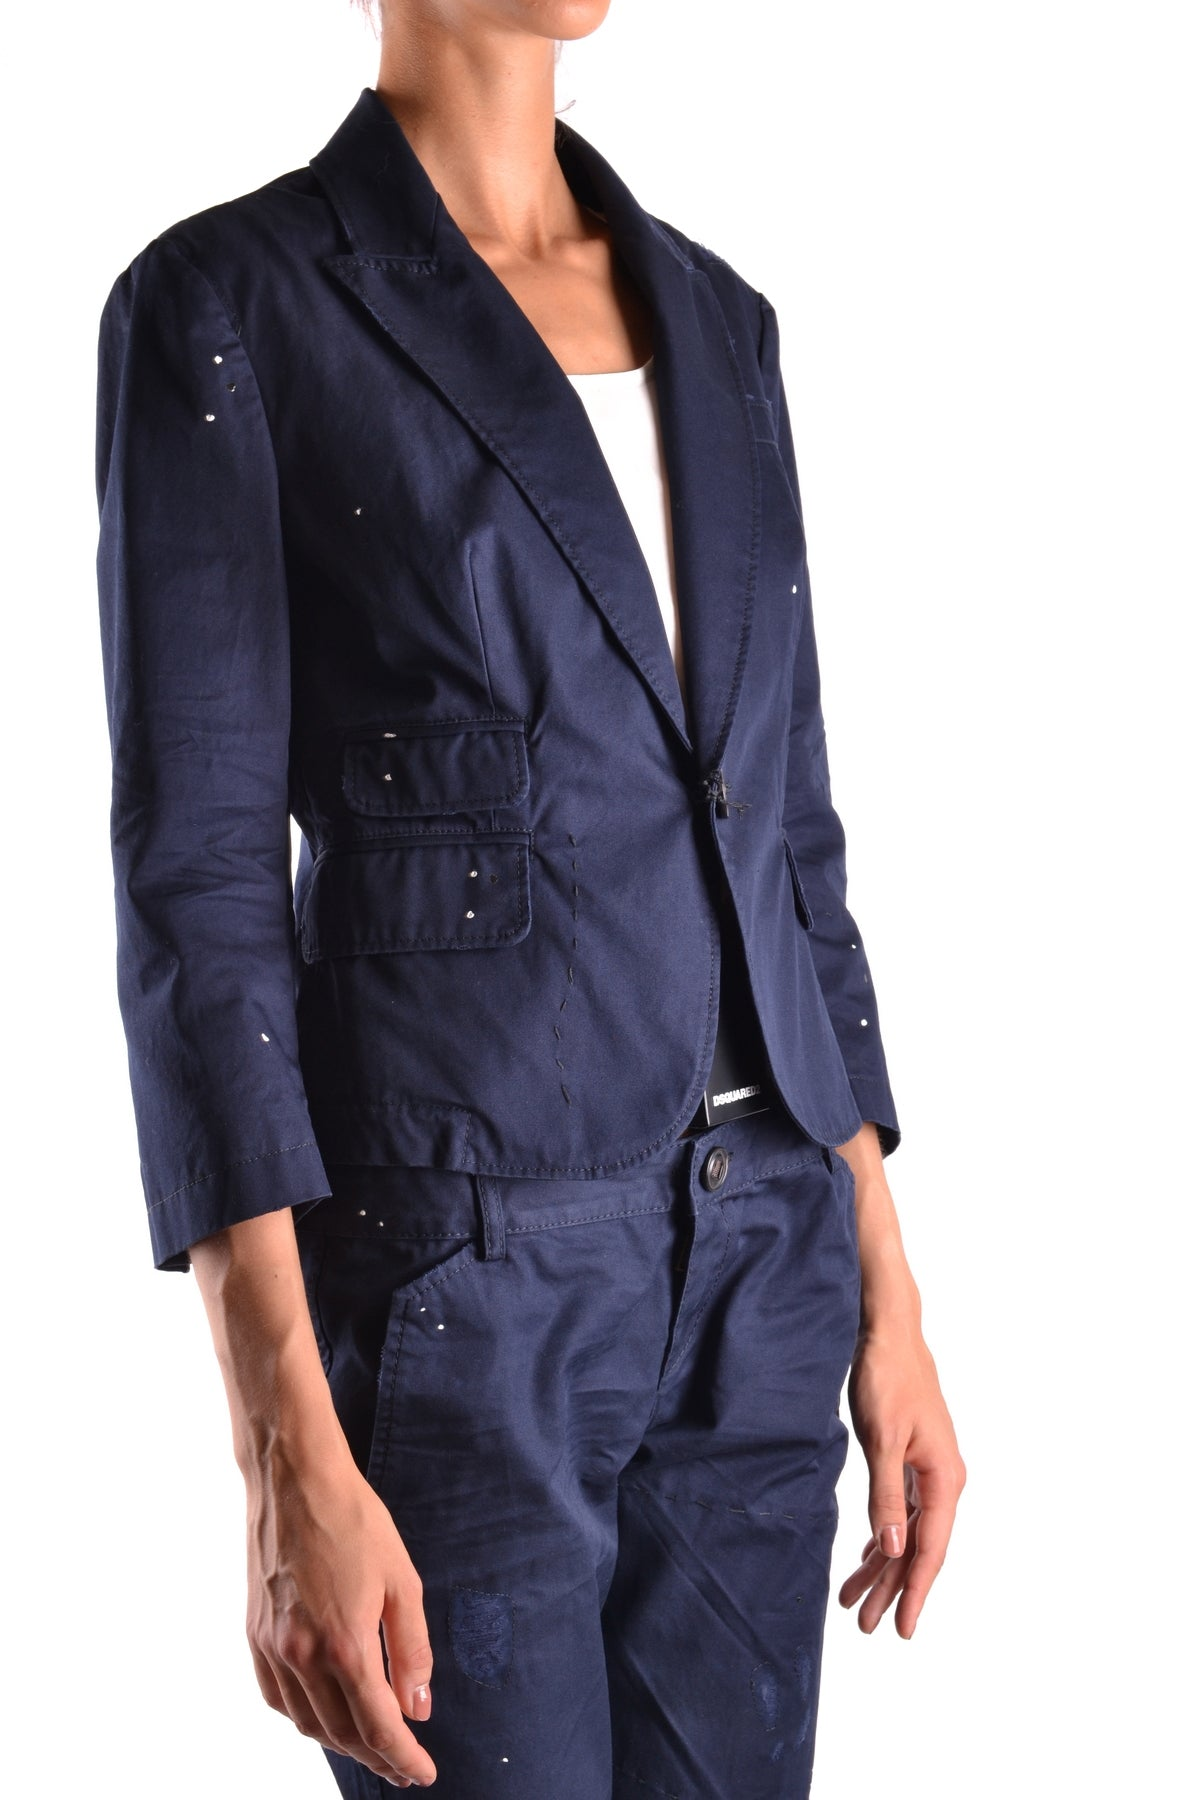 Jacket Dsquared-Jacket - WOMAN-42-Keyomi-Sook